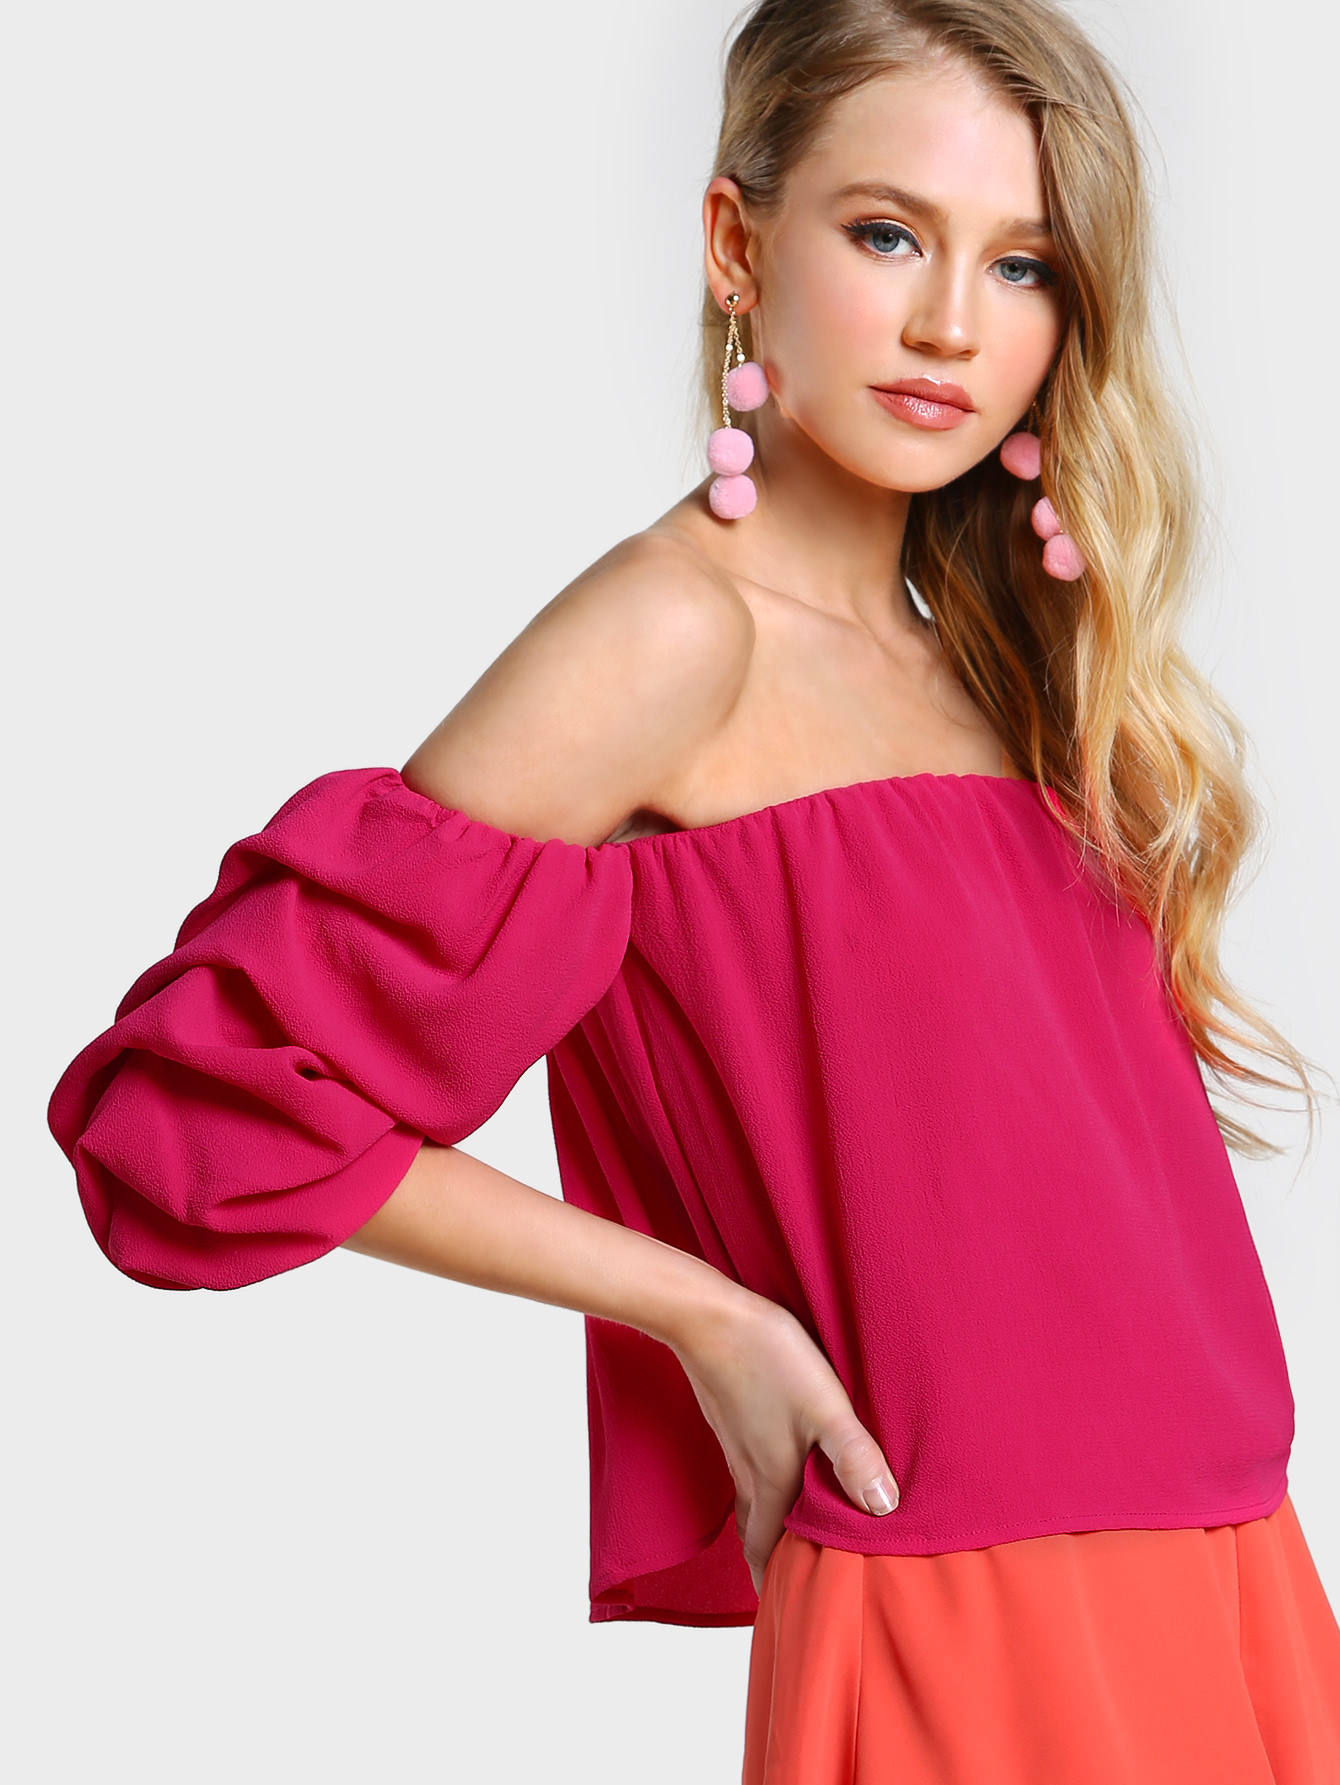 Top 10 wish list of classy outfits from Shein below 30$